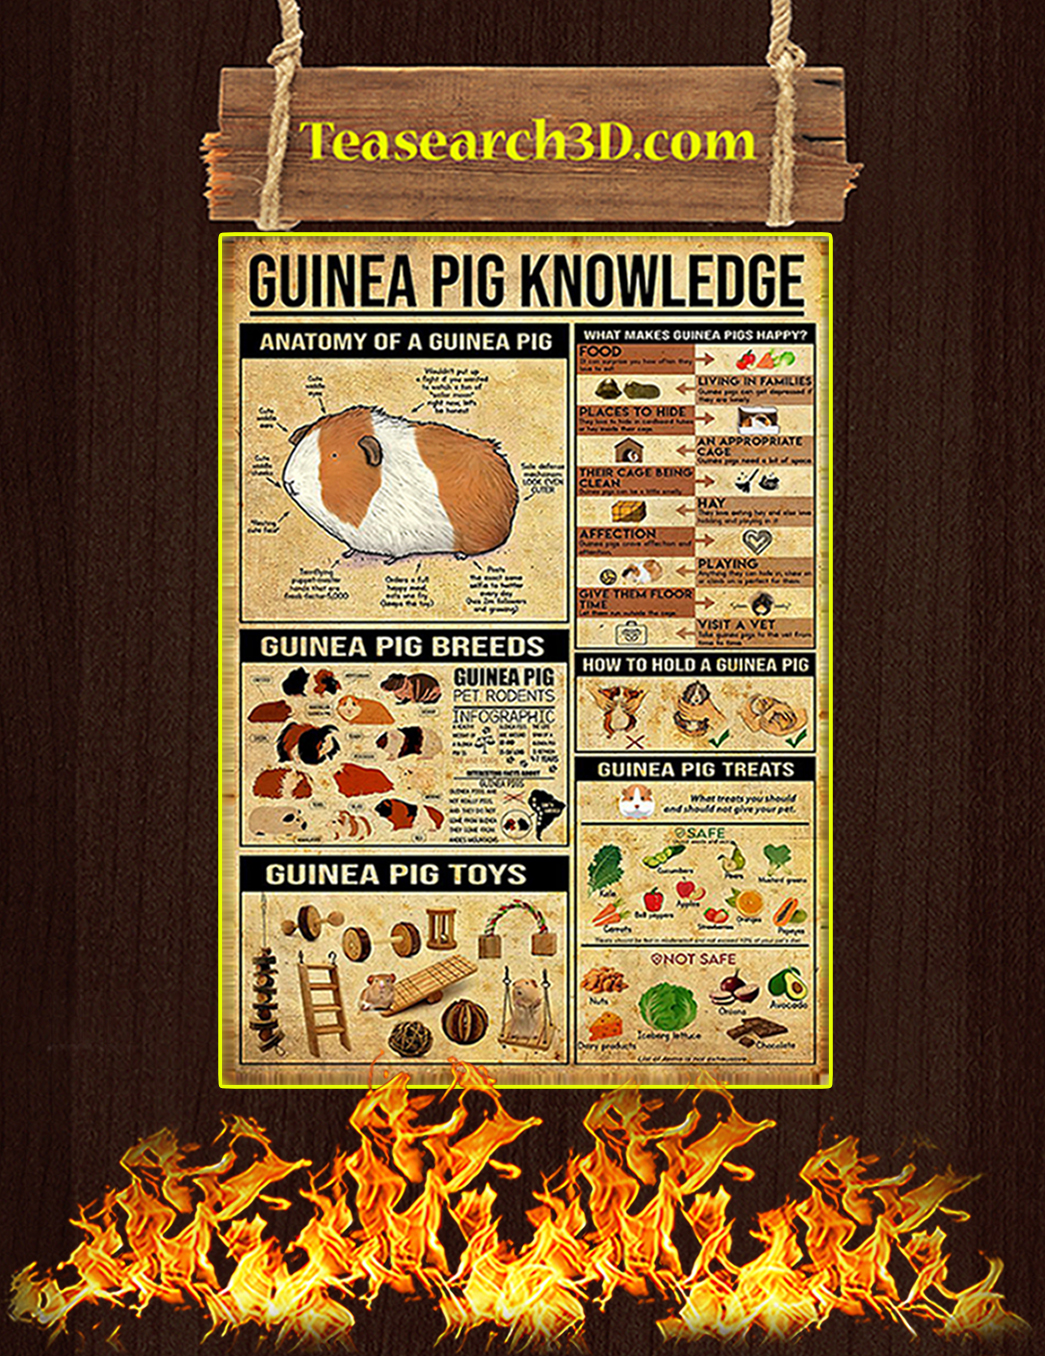 Guinea pig knowledge poster A1